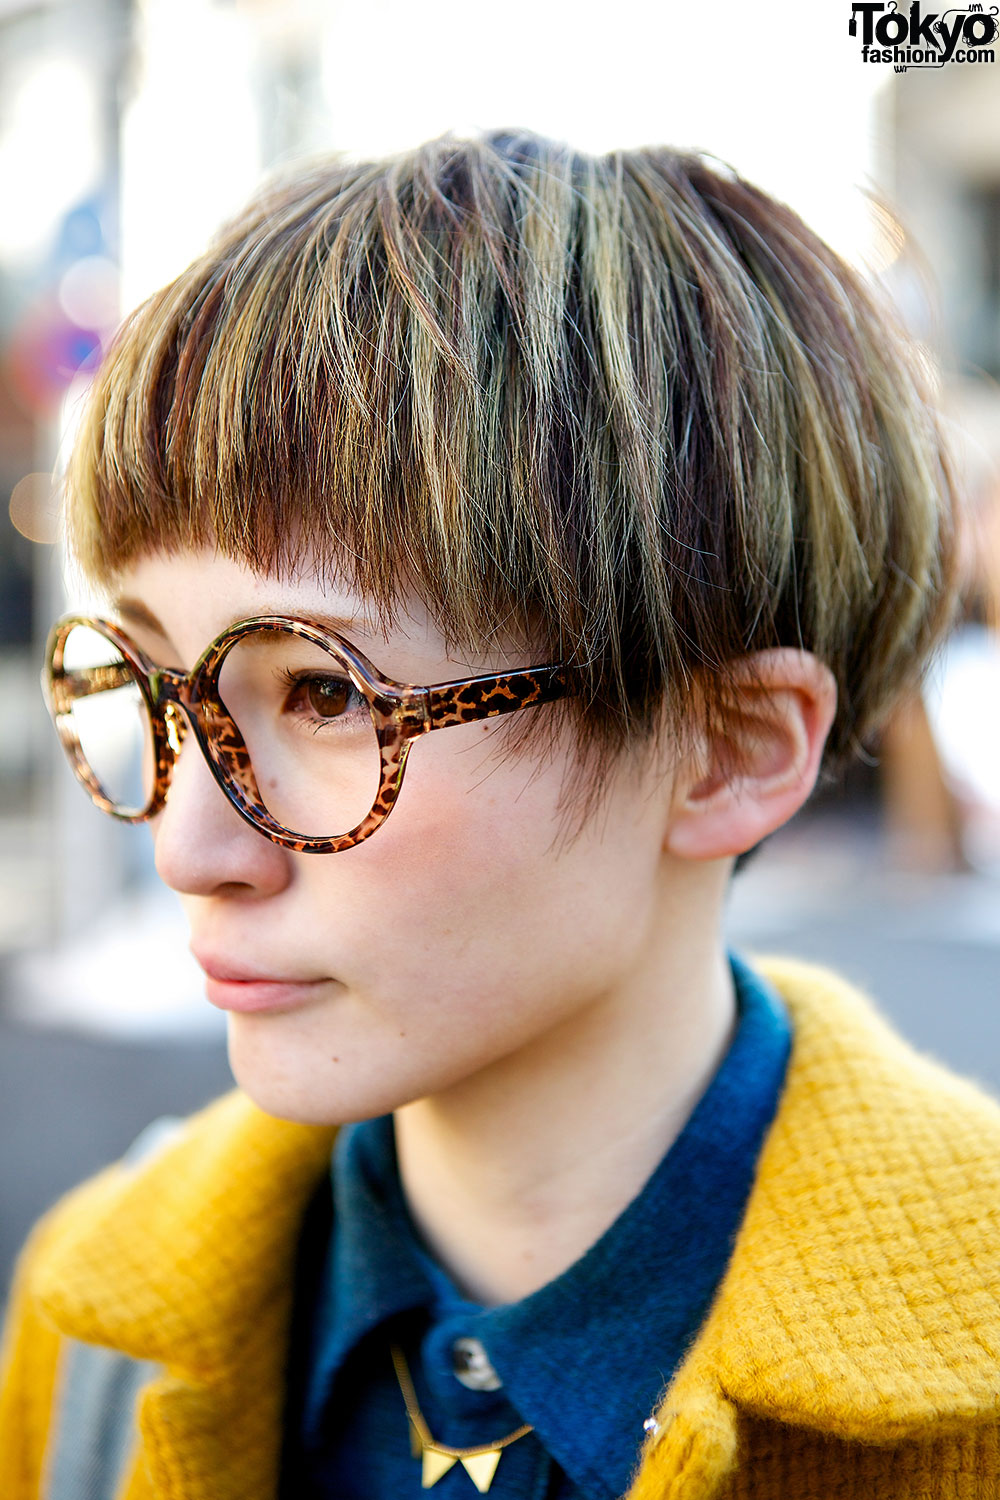 Cute Pixie Cut Round Glasses & Didizizi Mustard Coat in Harajuku